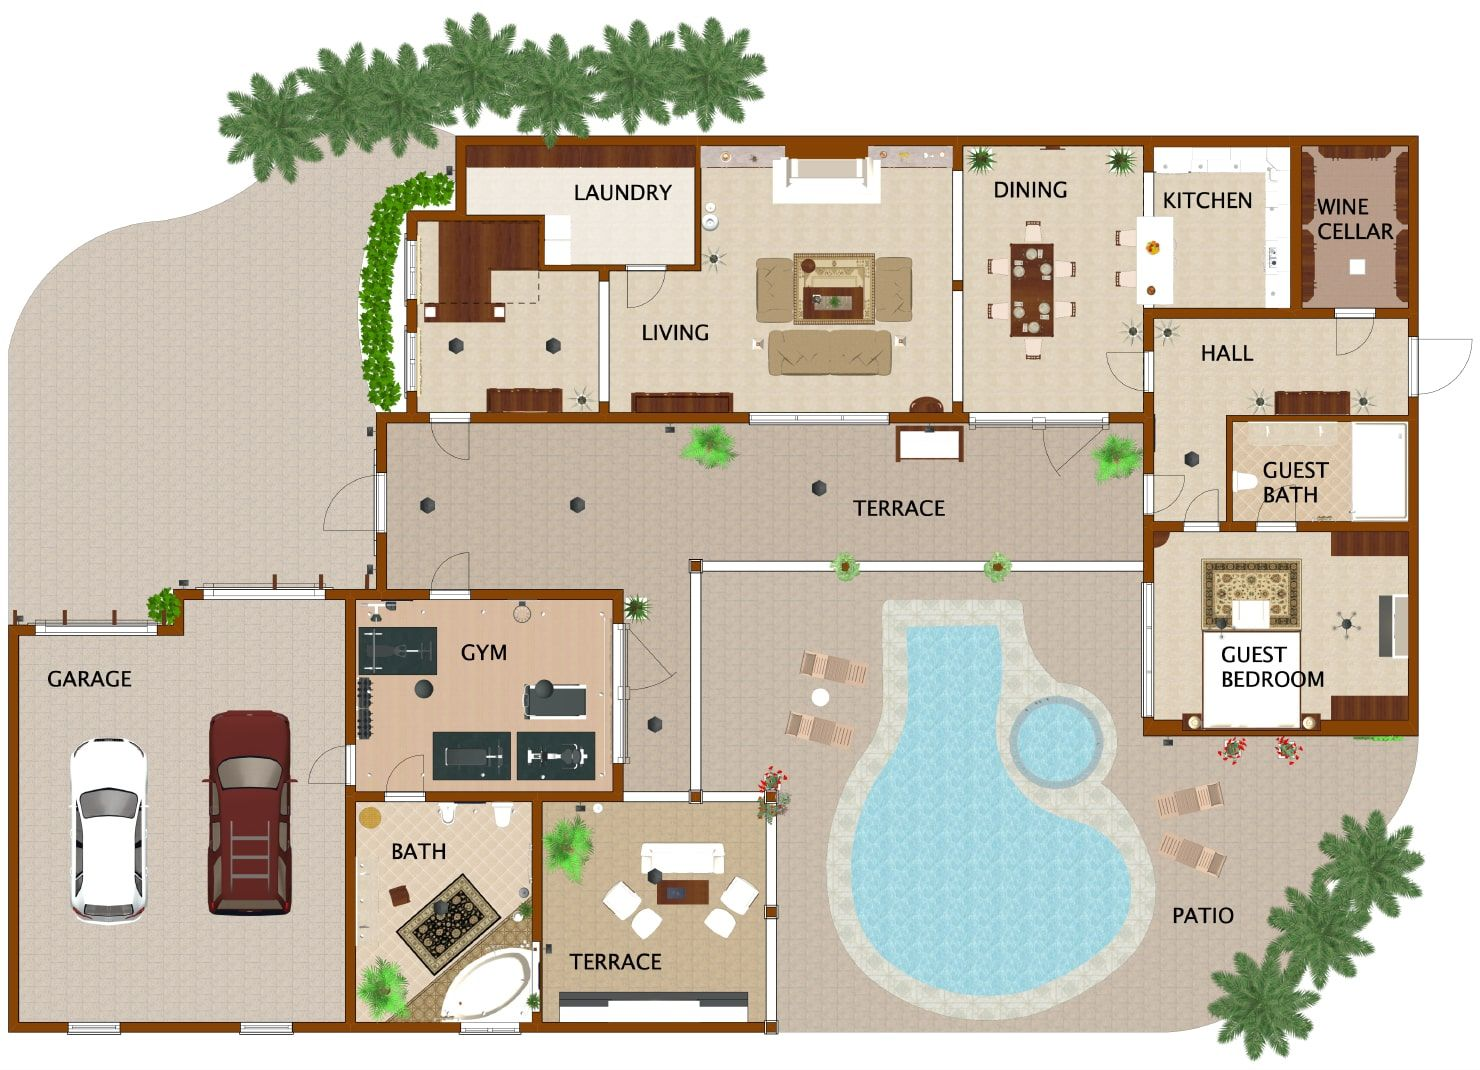 How To Draw A Floorpan Interior Design Software Home Design Software Floor Plans